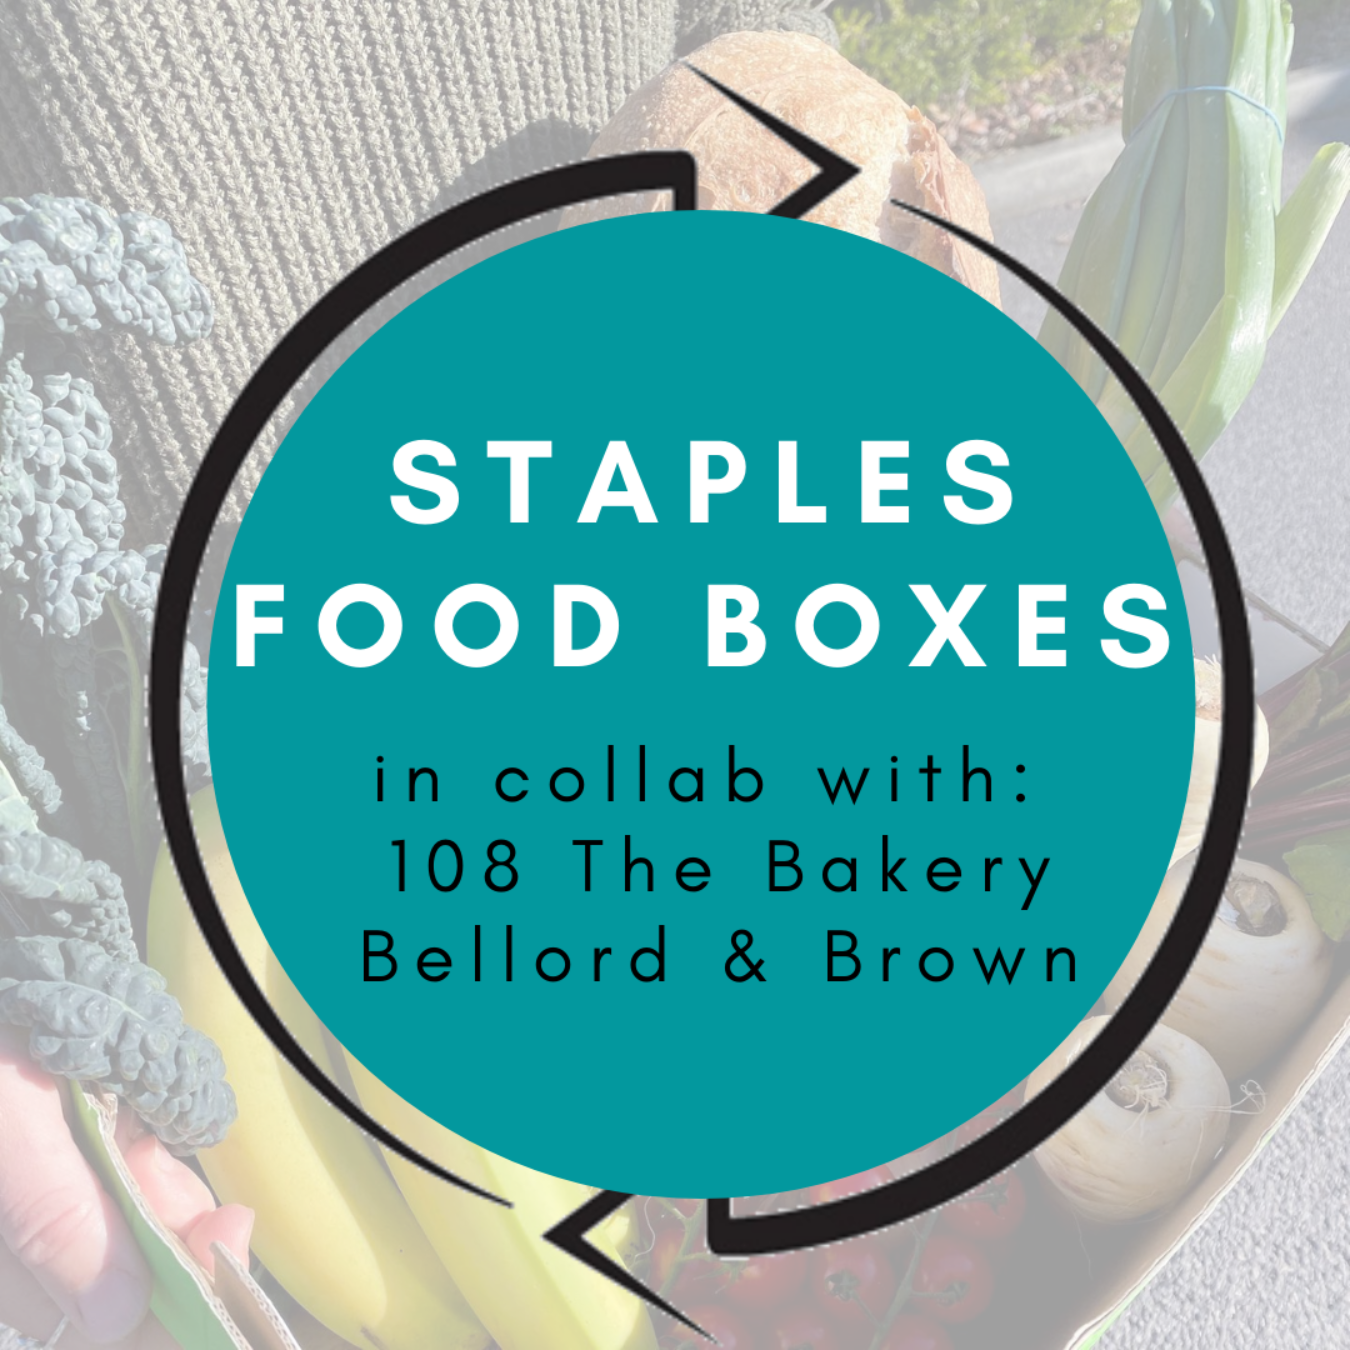 2. Staples Food Boxes